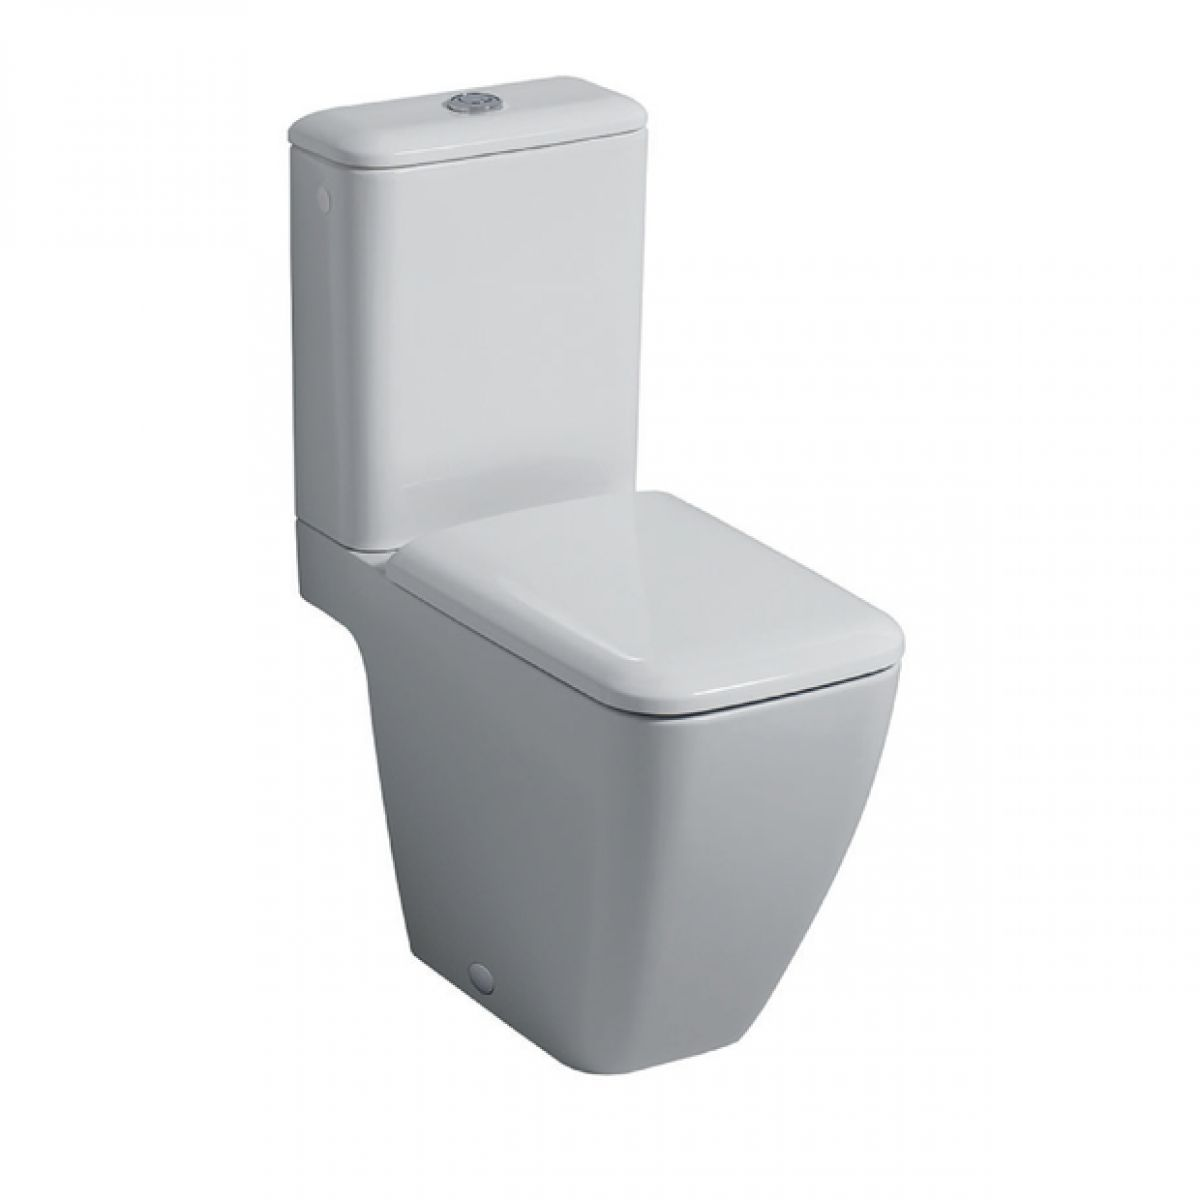 geberit icon square close coupled rimfree toilet uk. Black Bedroom Furniture Sets. Home Design Ideas